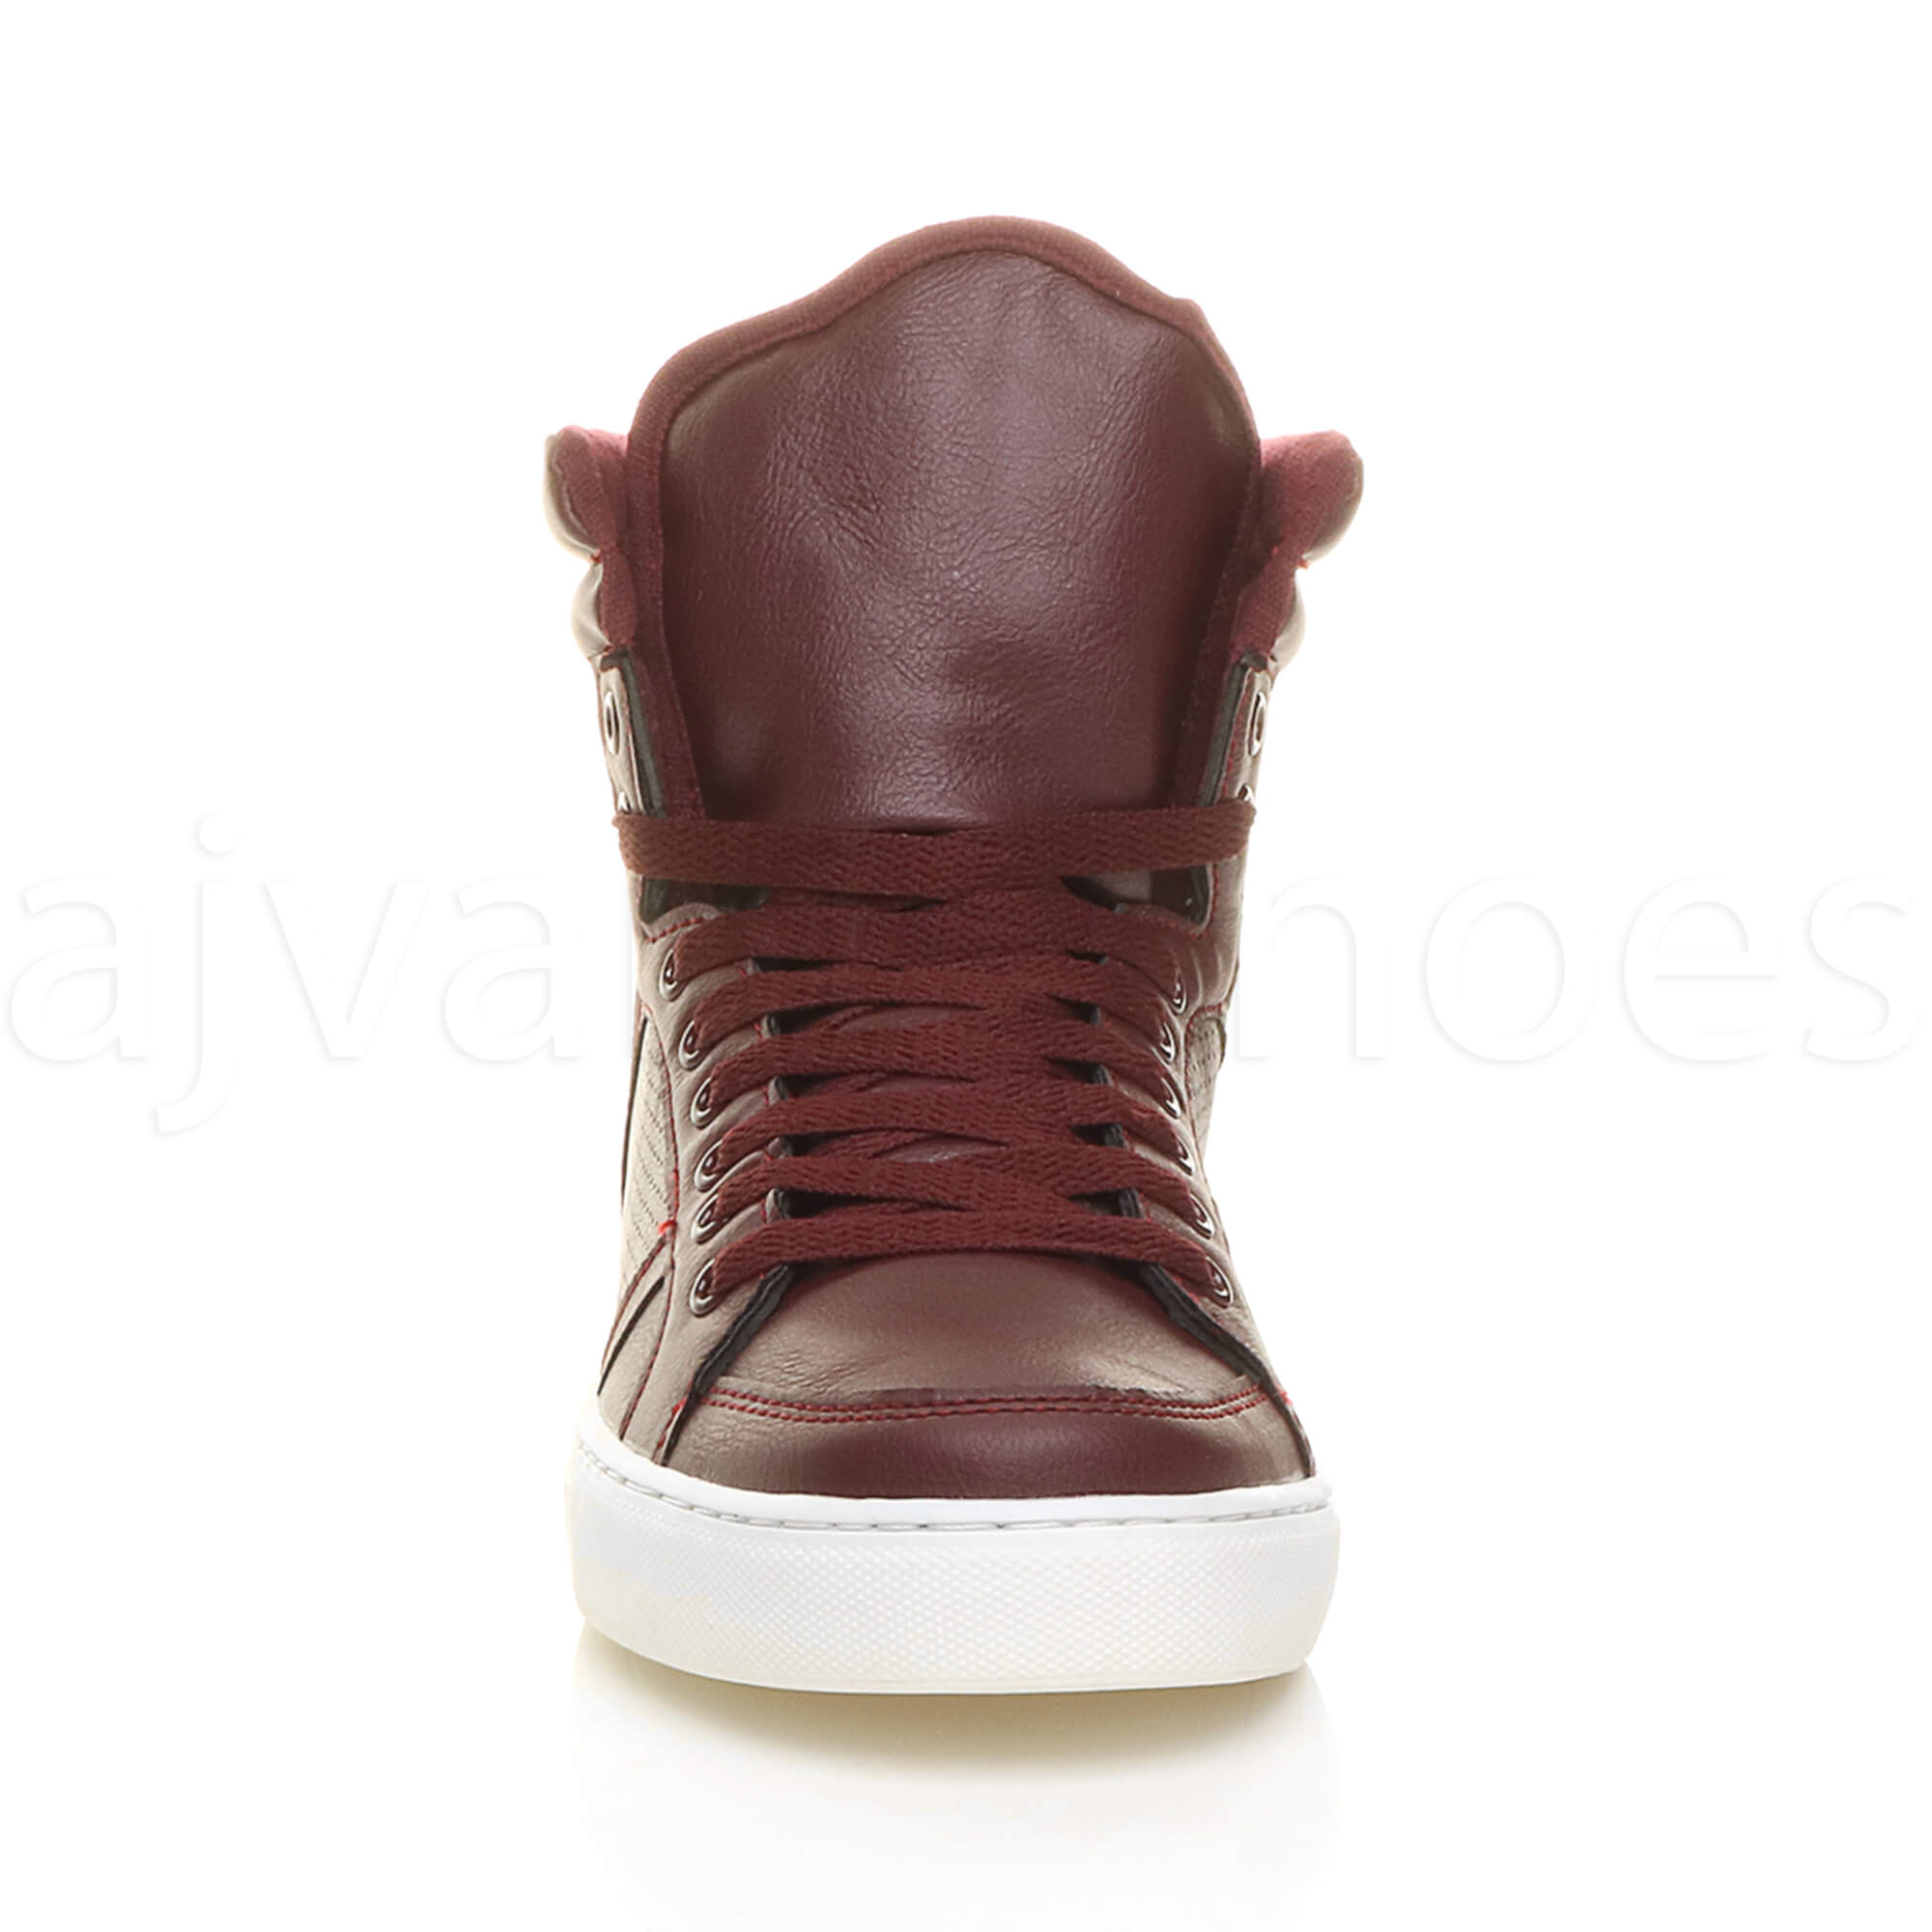 MENS-LACE-UP-CASUAL-FLAT-HI-HIGH-TOP-ANKLE-BOOTS-SHOES-TRAINERS-SNEAKERS-SIZE thumbnail 14